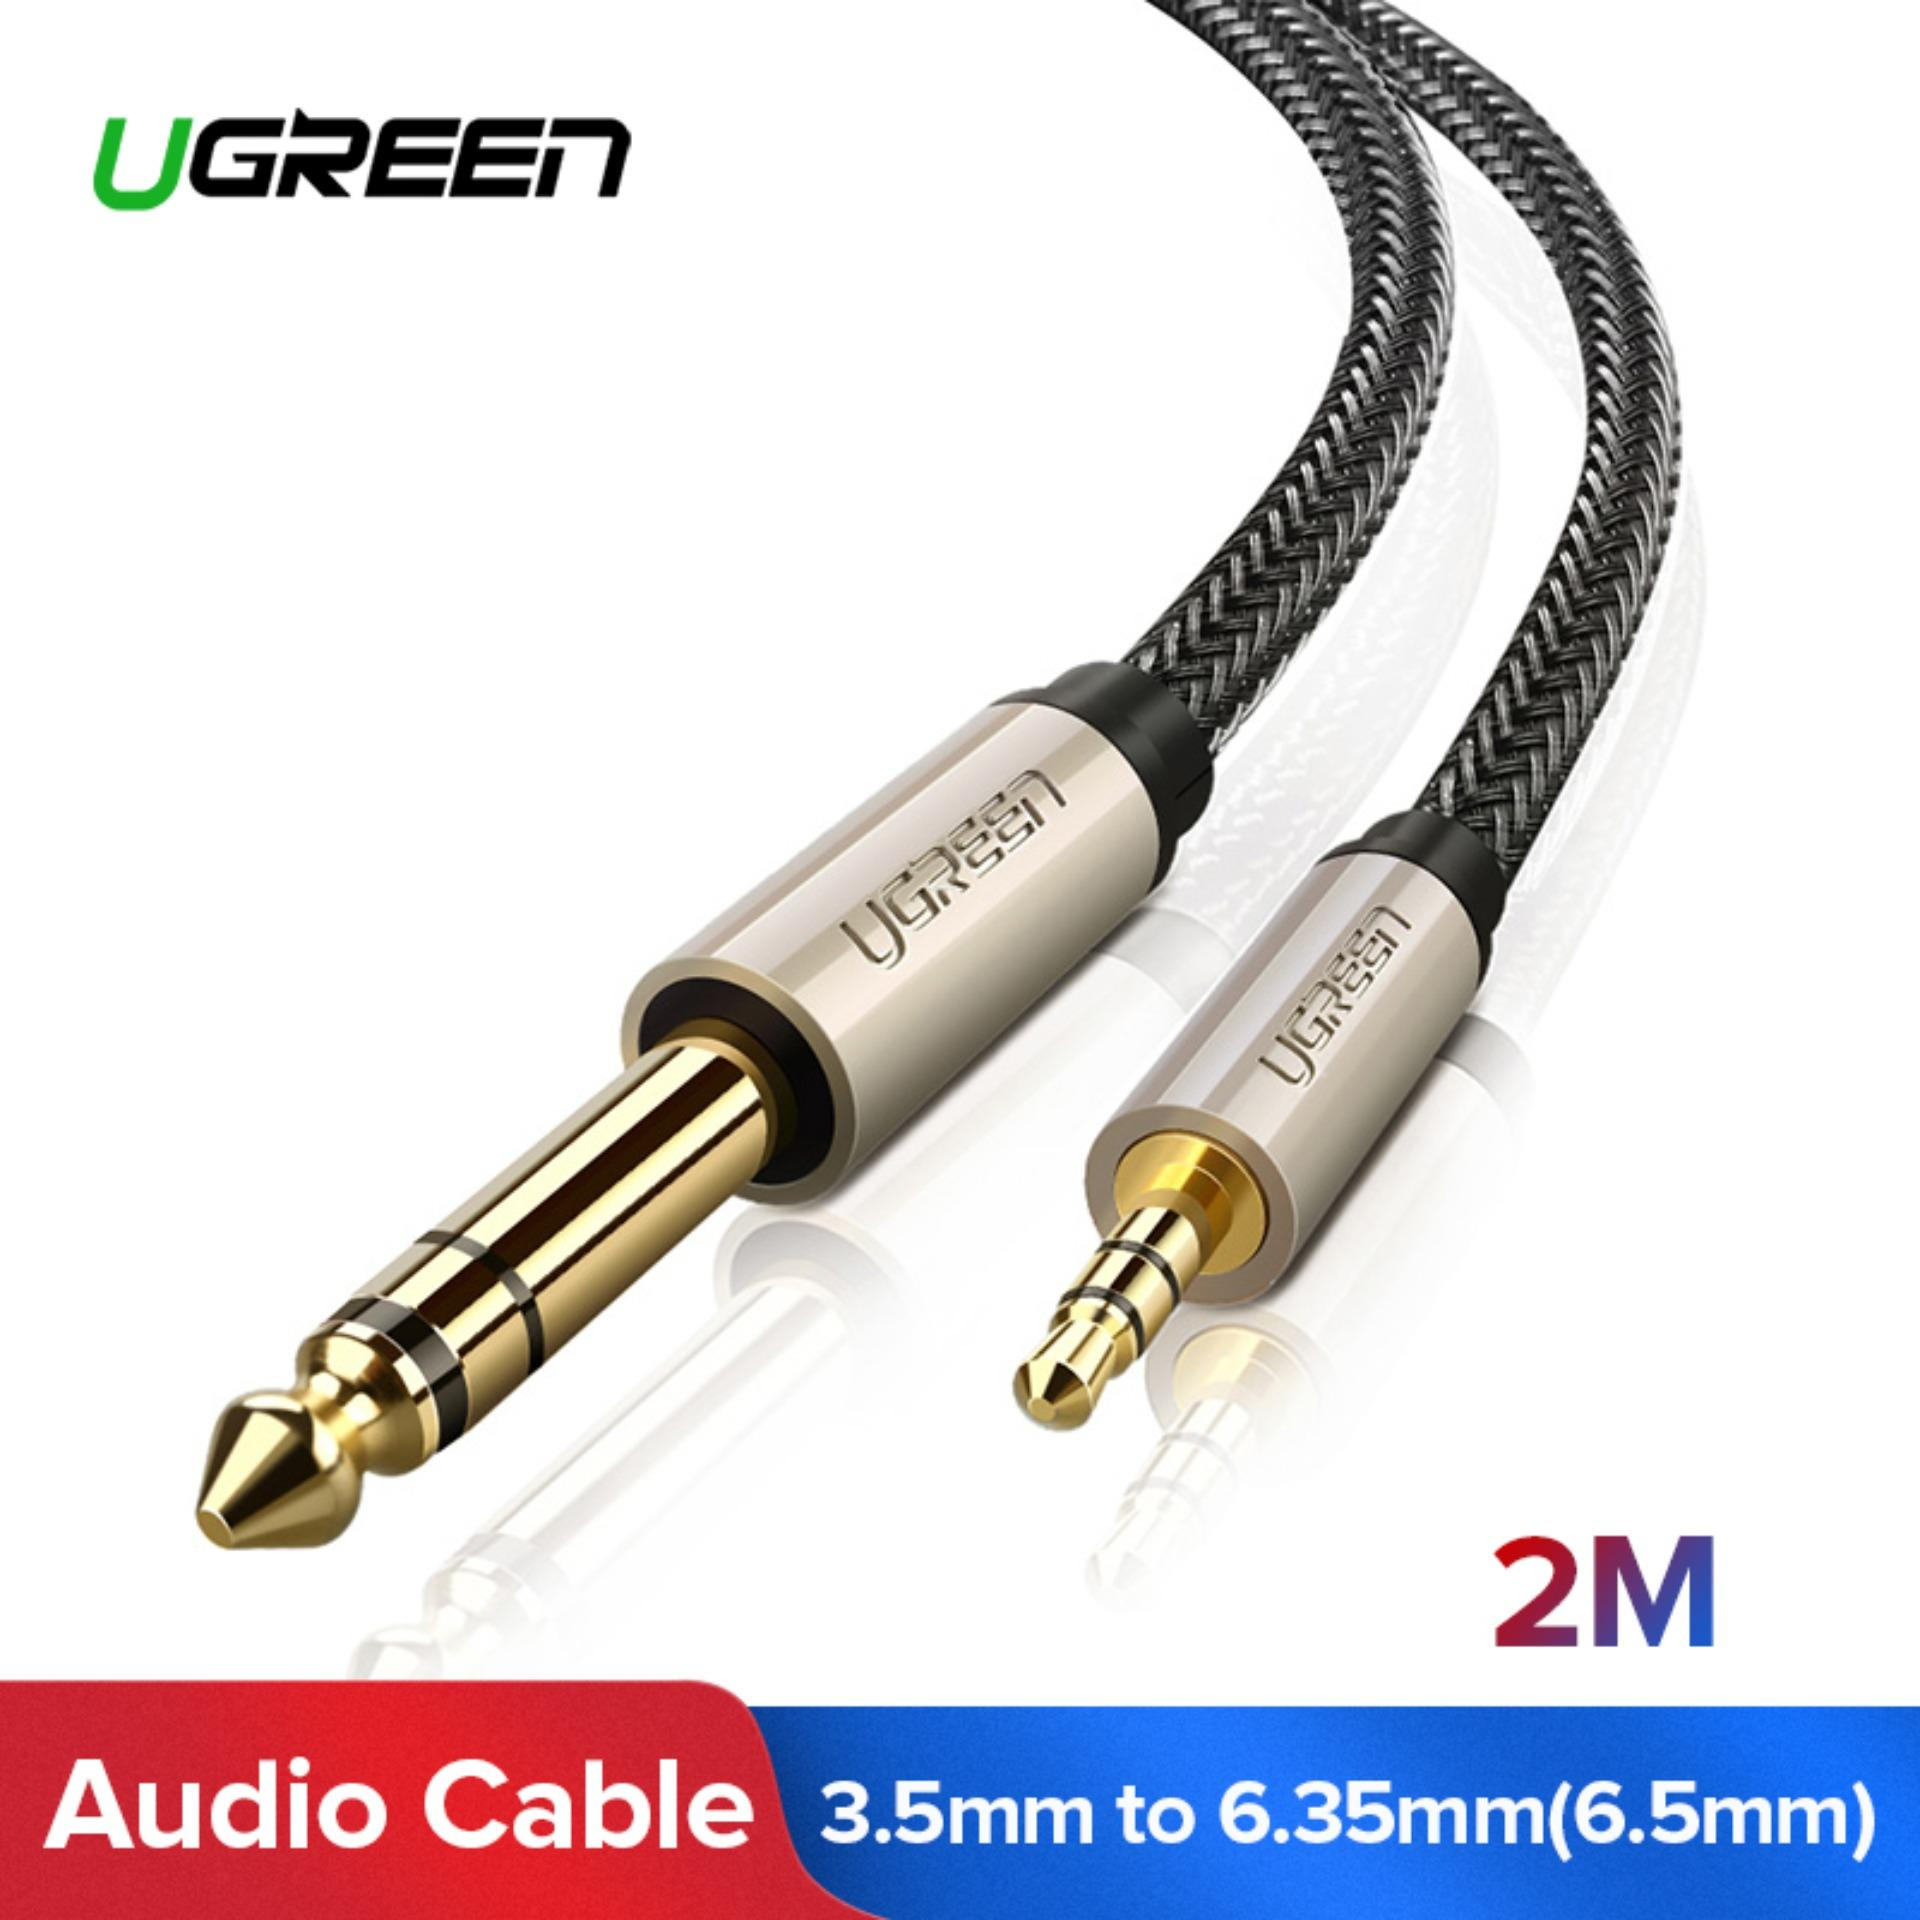 UGREEN 2M 3.5mm to 6.35mm Adapter Aux Cable for Mixer Amplifier CD Player Speaker Gold Plated 3.5 Jack to 6.5 Jack Male Audio Cable-Black